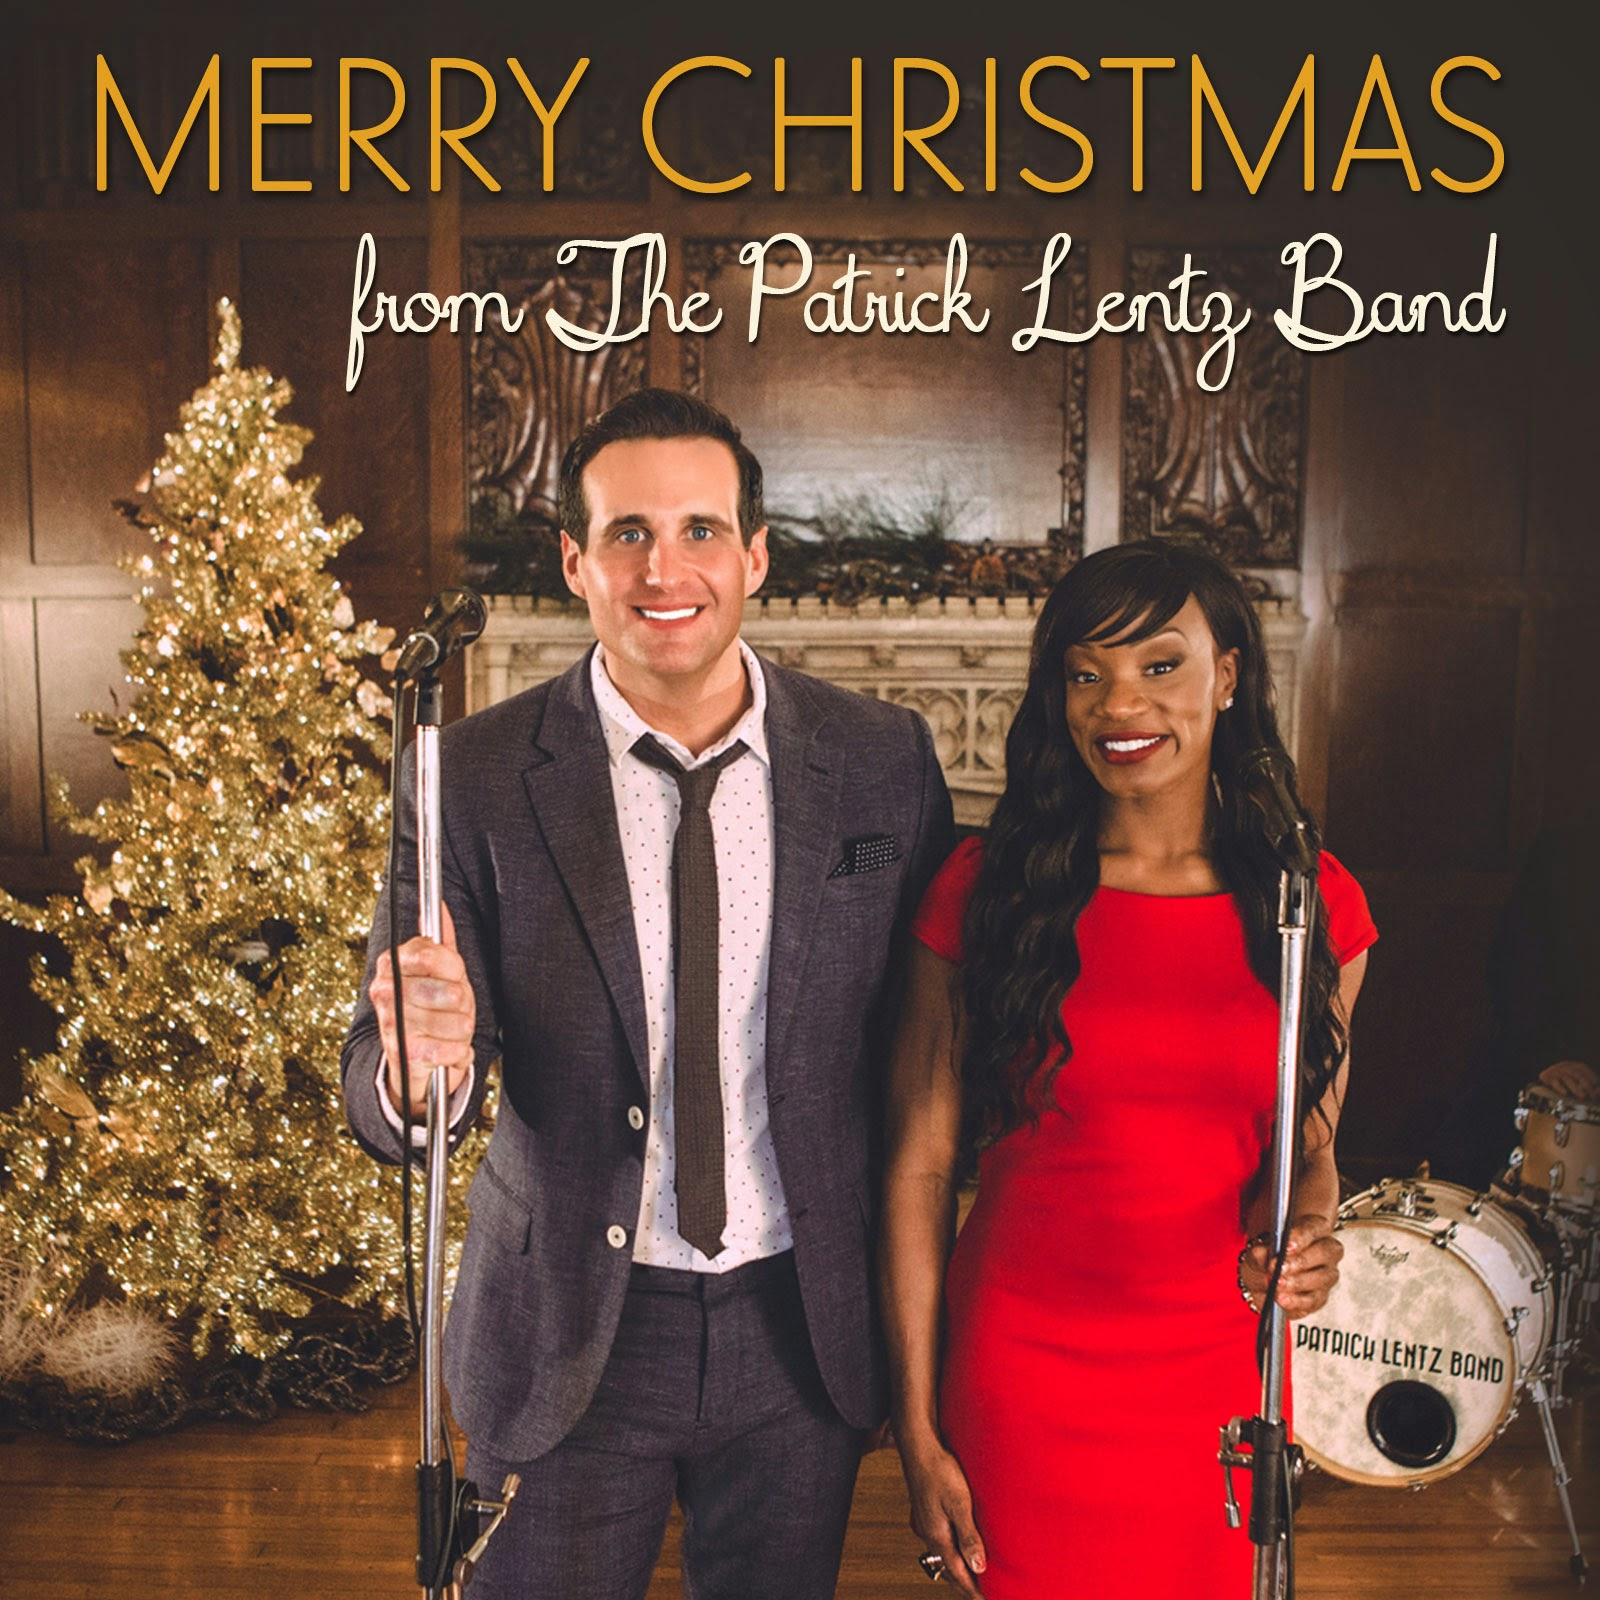 Merry Christmas From The Patrick Lentz Band!